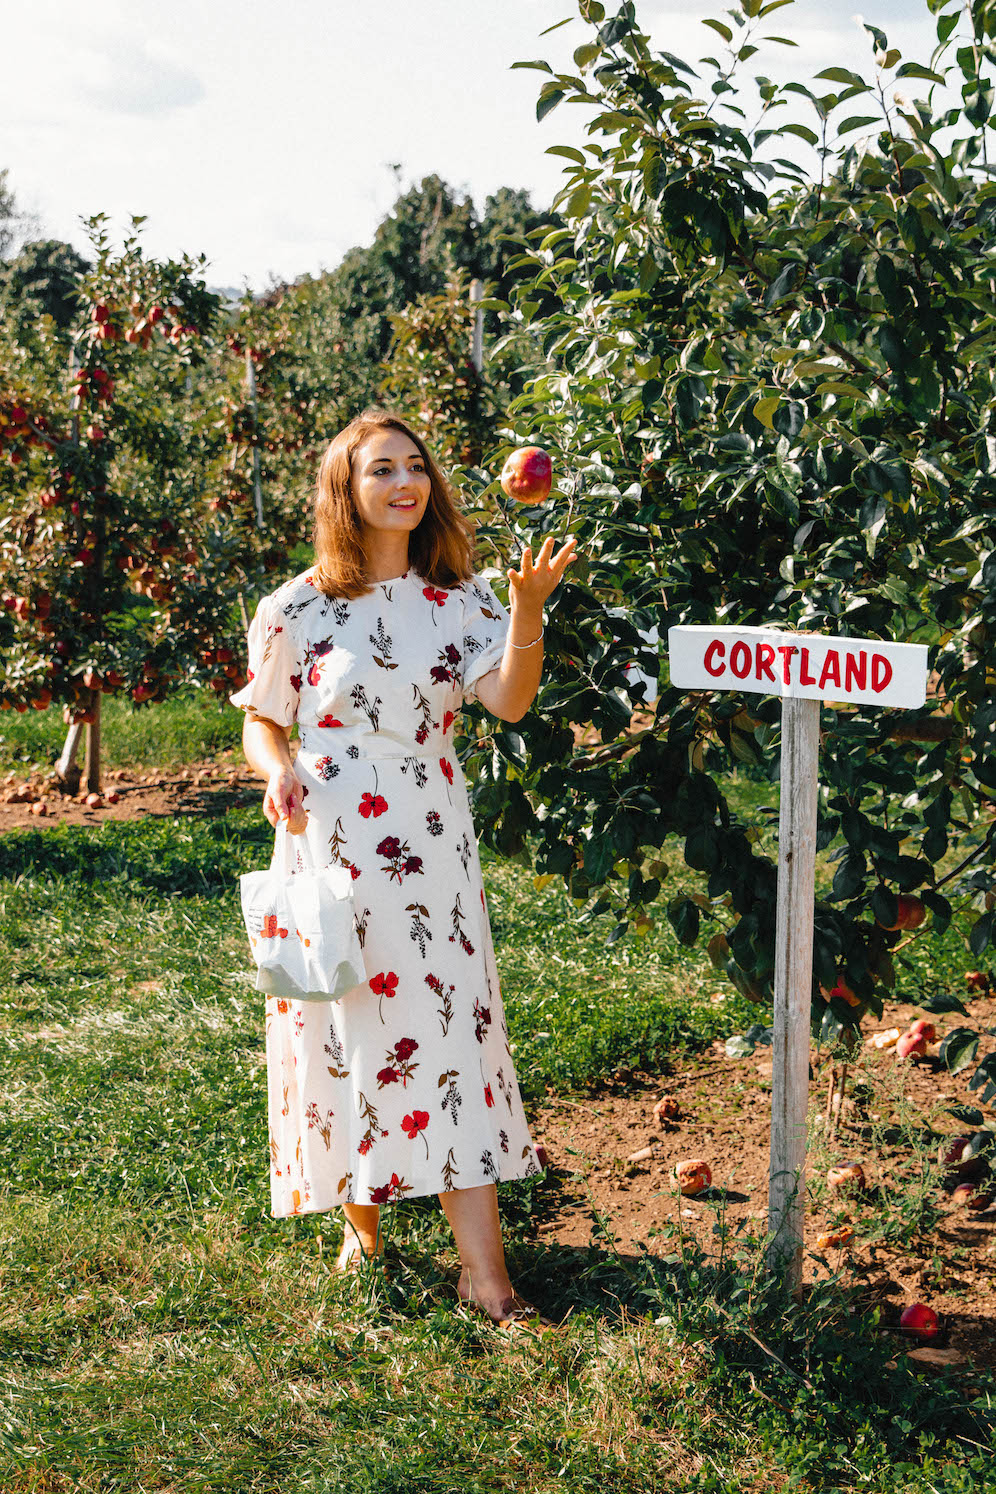 Apple-Picking-in-Fairfield-County-Connecticut-The-Coastal-Confidence-by-Aubrey-Yandow-1635.jpg